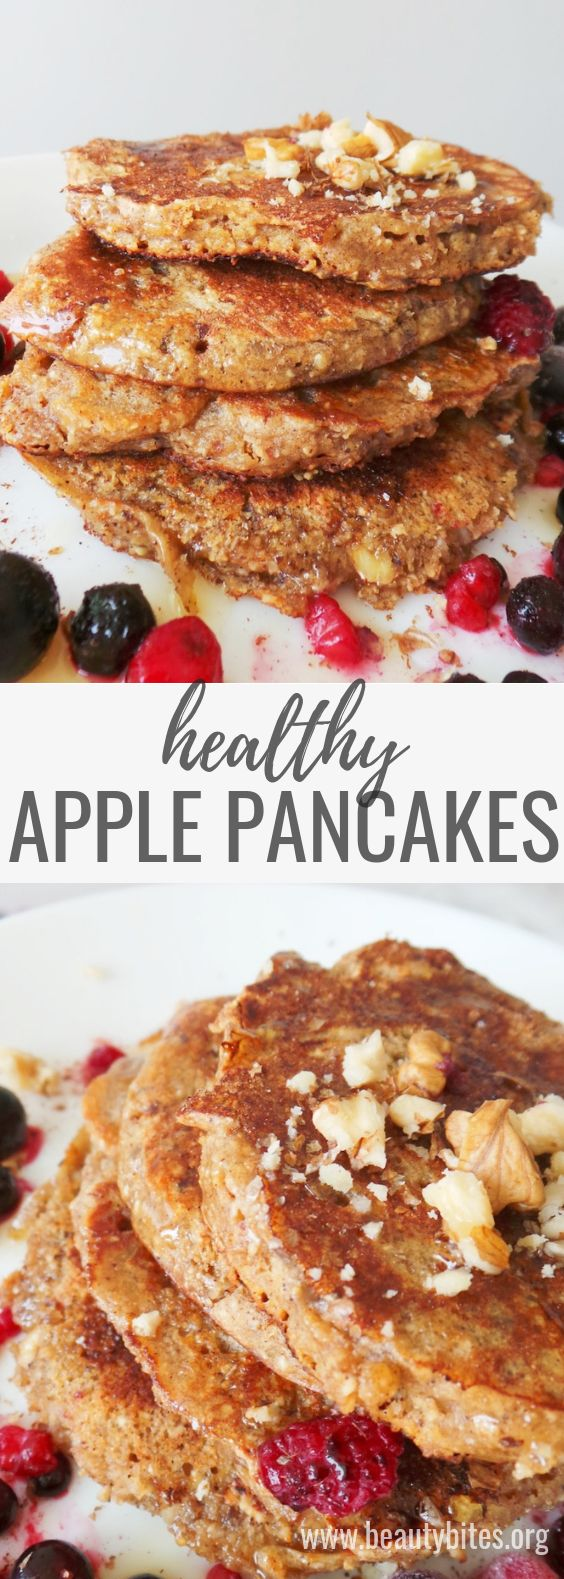 APPLE PANCAKES WITH OATS – HEALTHY & EASY BREAKFAST RECIPE #recipes #healthyfoodrecipes #food #foodporn #healthy #yummy #instafood #foodie #delicious #dinner #breakfast #dessert #lunch #vegan #cake #eatclean #homemade #diet #healthyfood #cleaneating #foodstagram